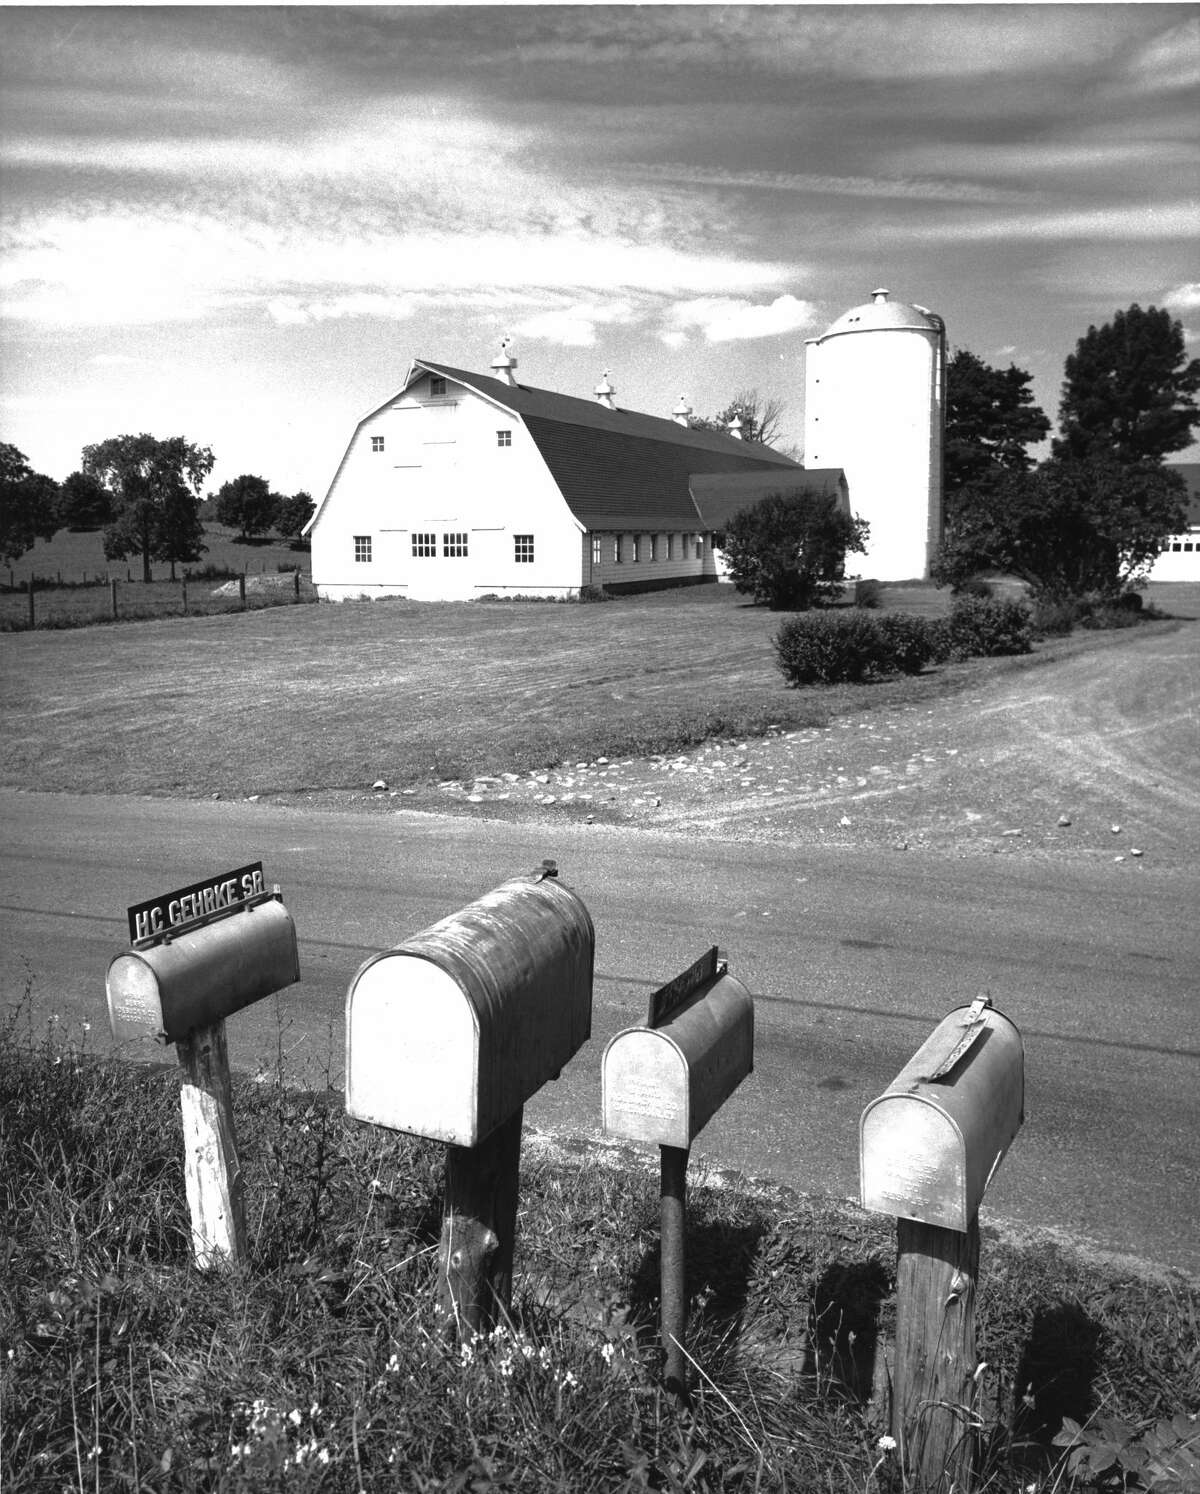 View of mailboxes at the side of the road in front of a dairy farm in Connecticut. (Photo by Camerique/Getty Images)